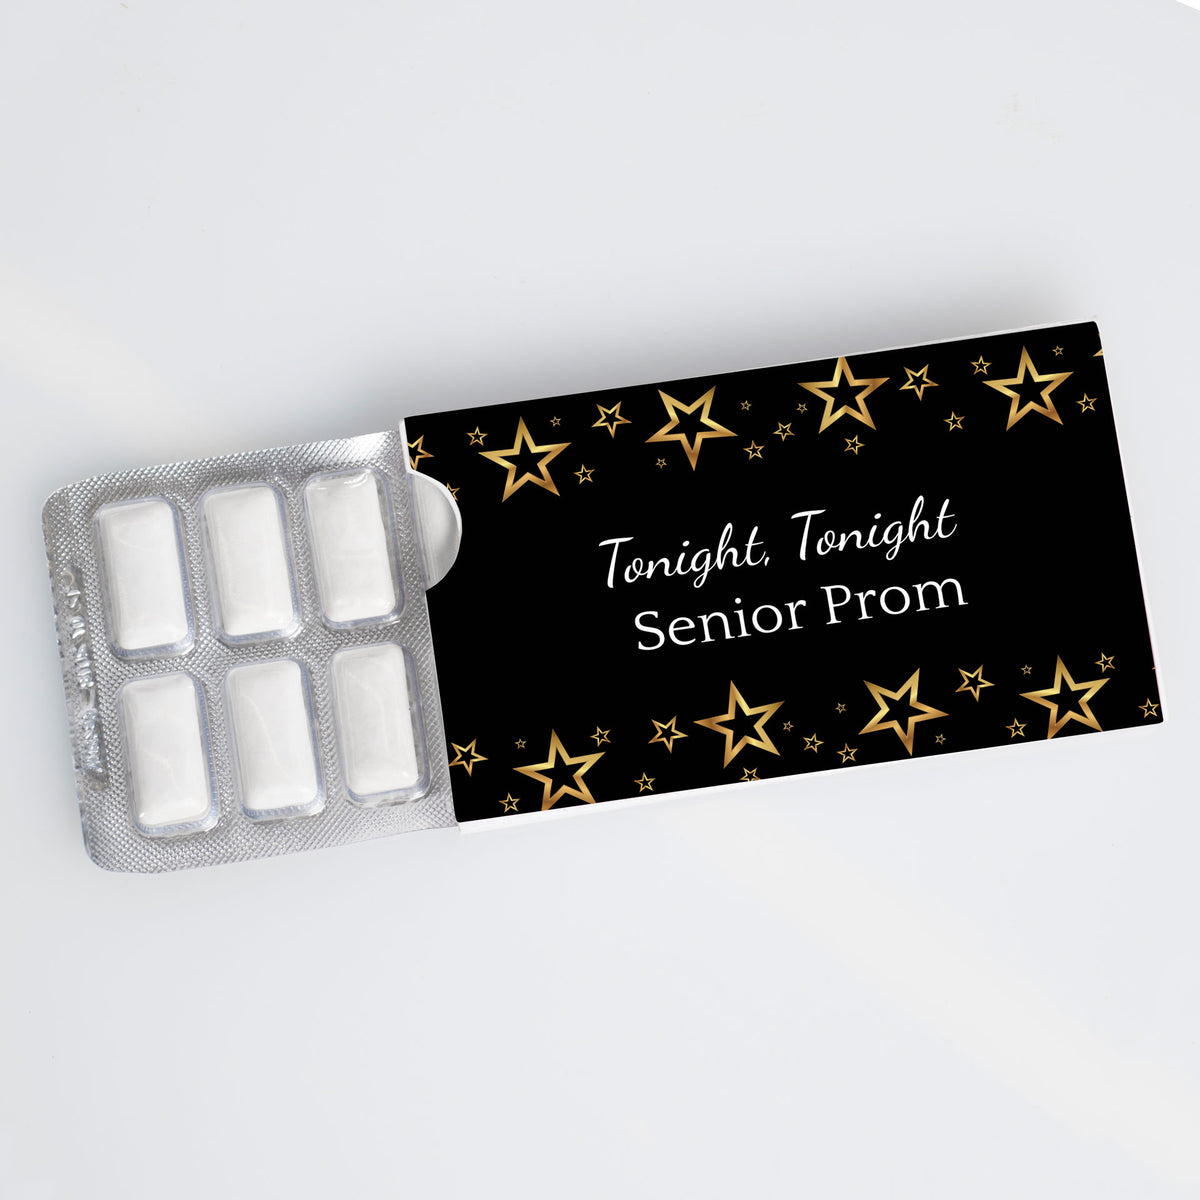 Tonight, Tonight Personalized Gum Sliders